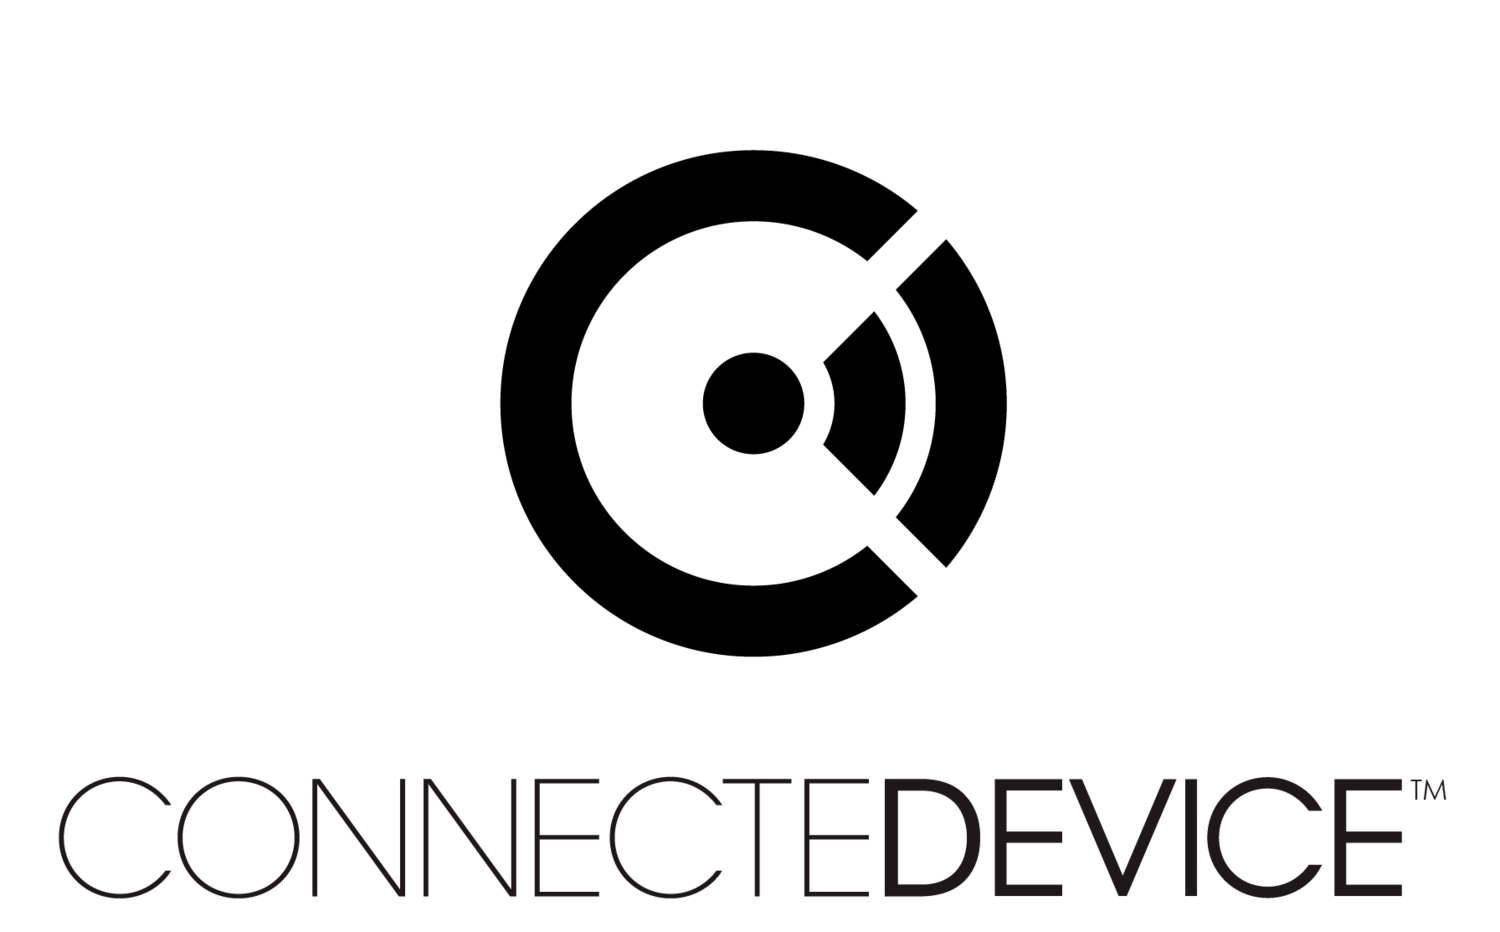 CONNECTEDEVICE Ltd.